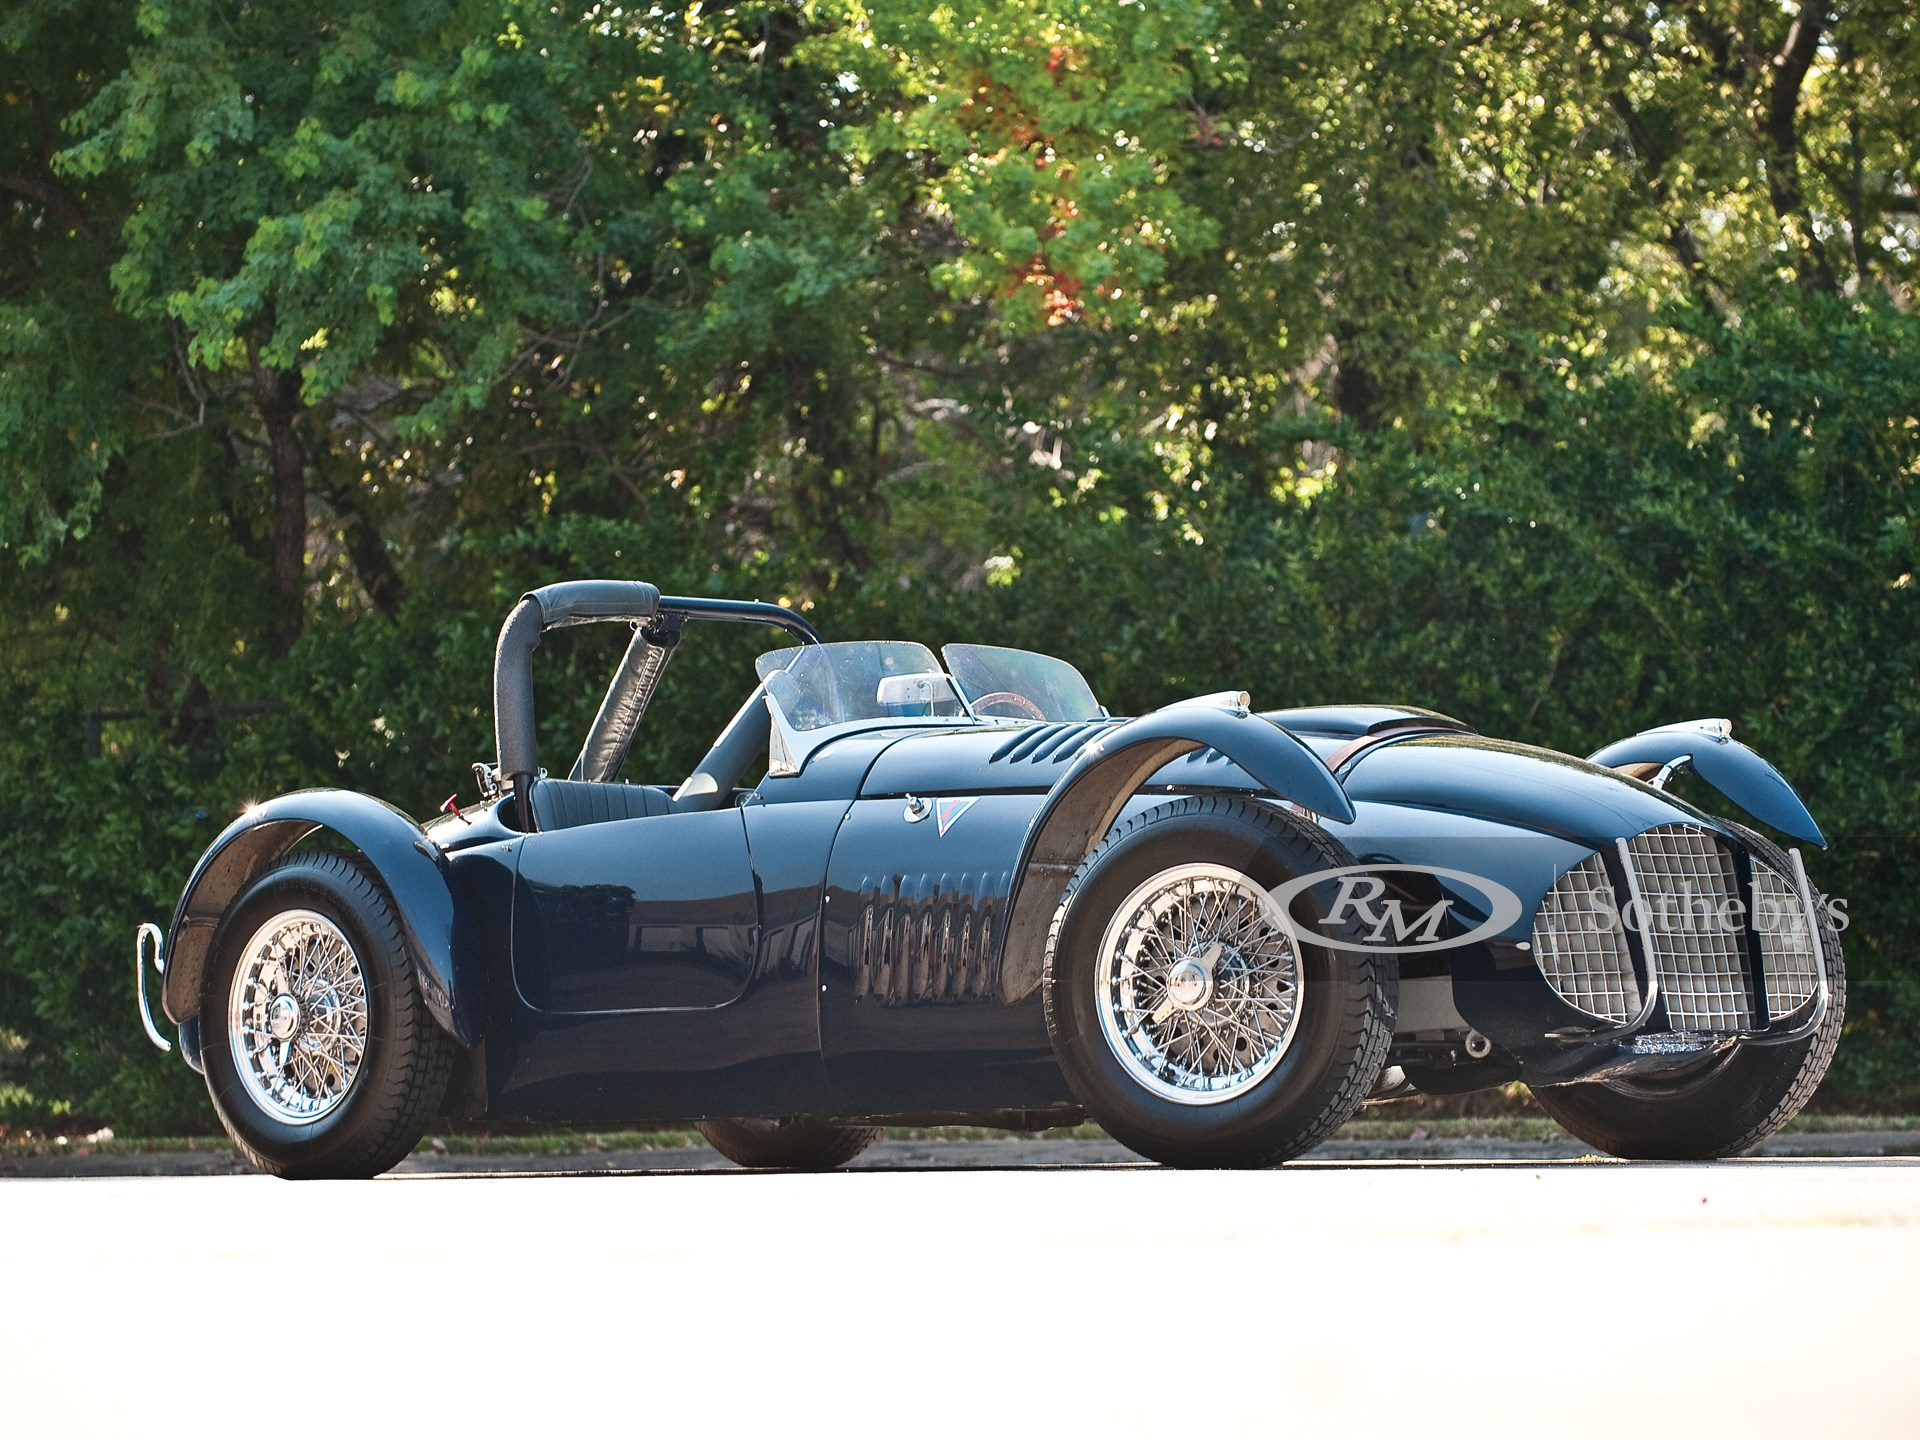 1950 Fitch-Whitmore Le Mans Special